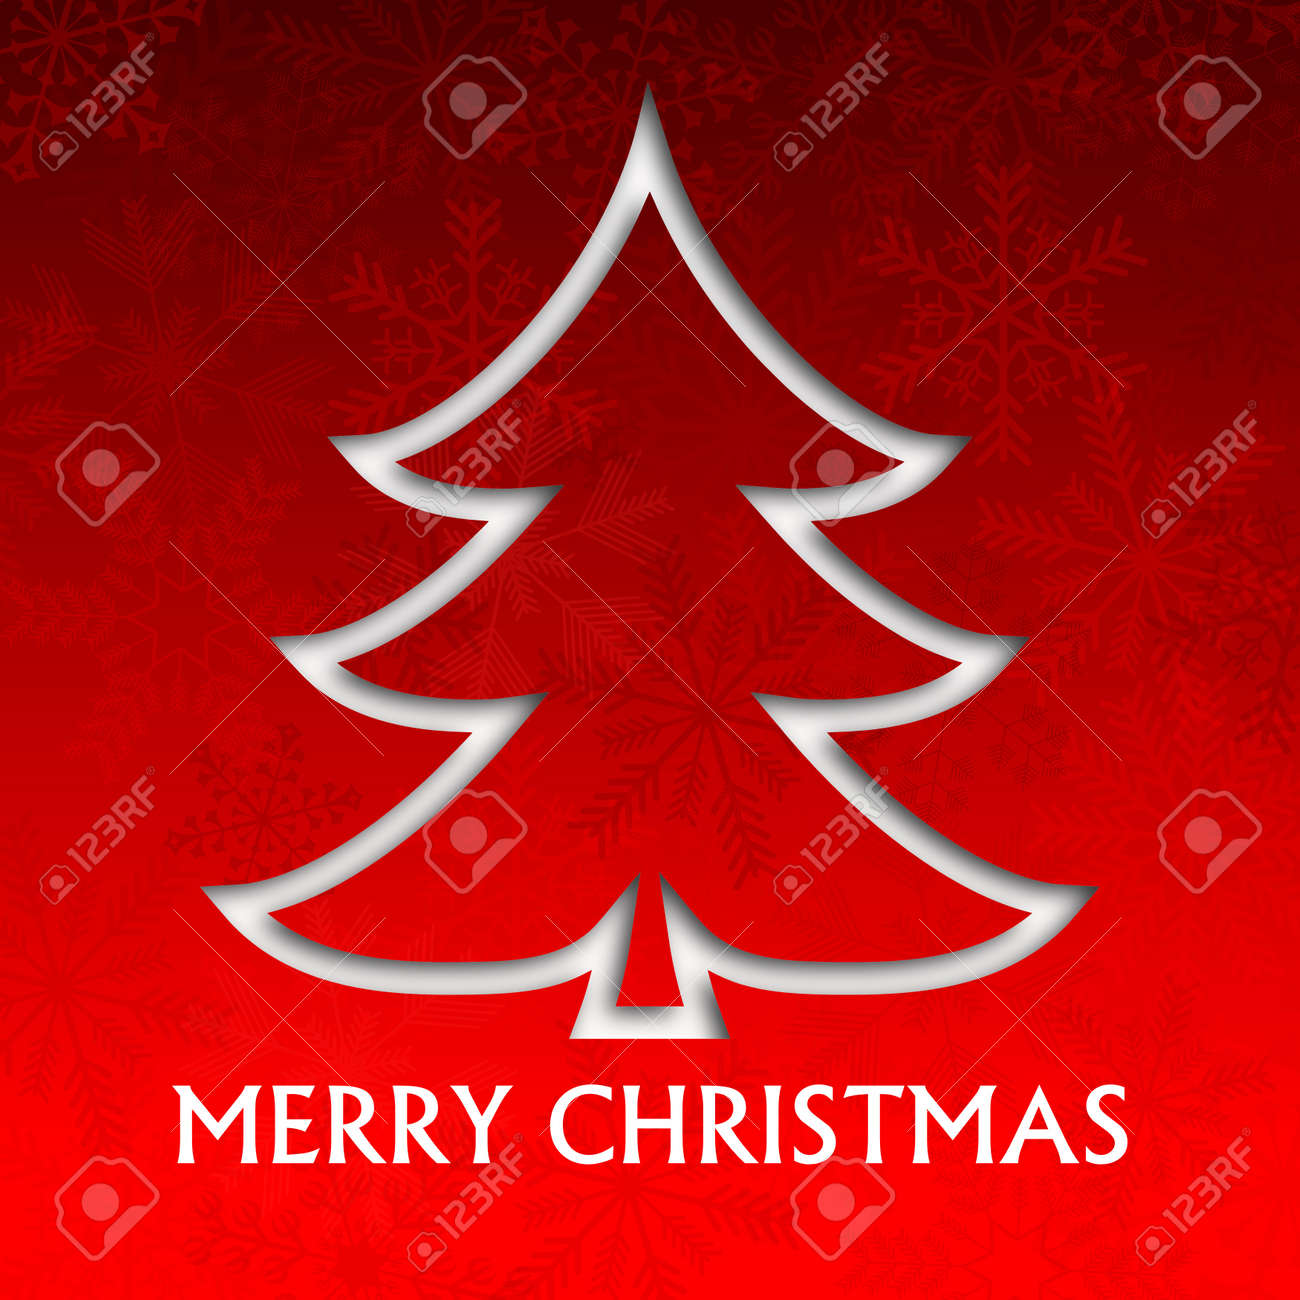 merry christmas illustration with christmas tree and snowflakes Stock Photo - 16506296